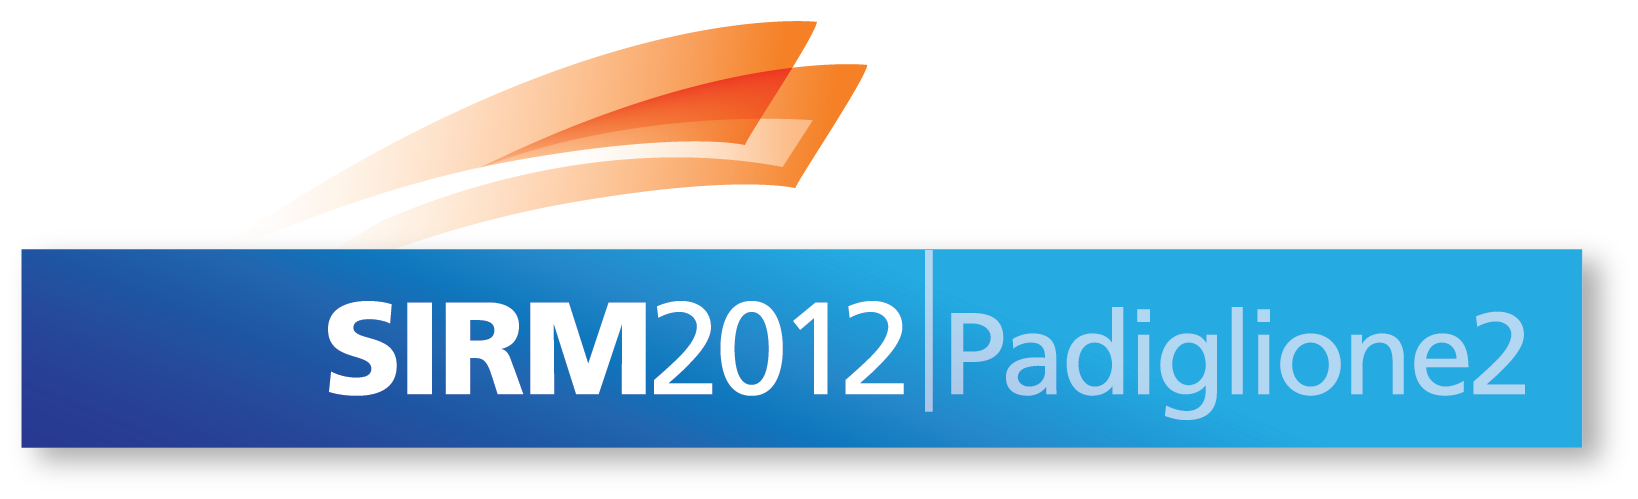 SIRM 2012